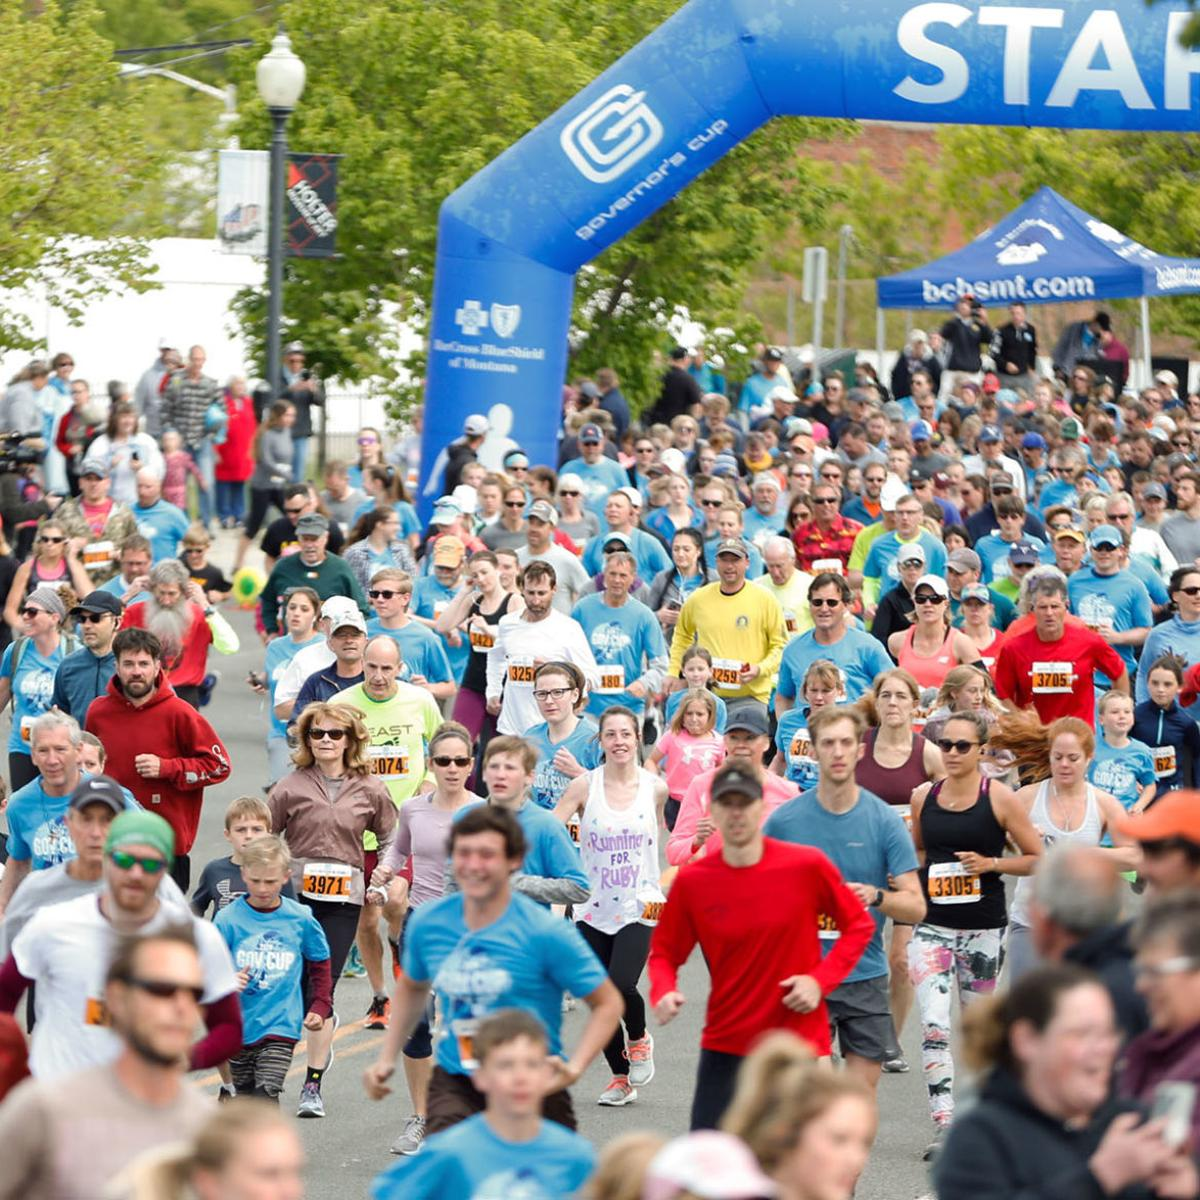 46th Governor's Cup turns Helena into Montana's running